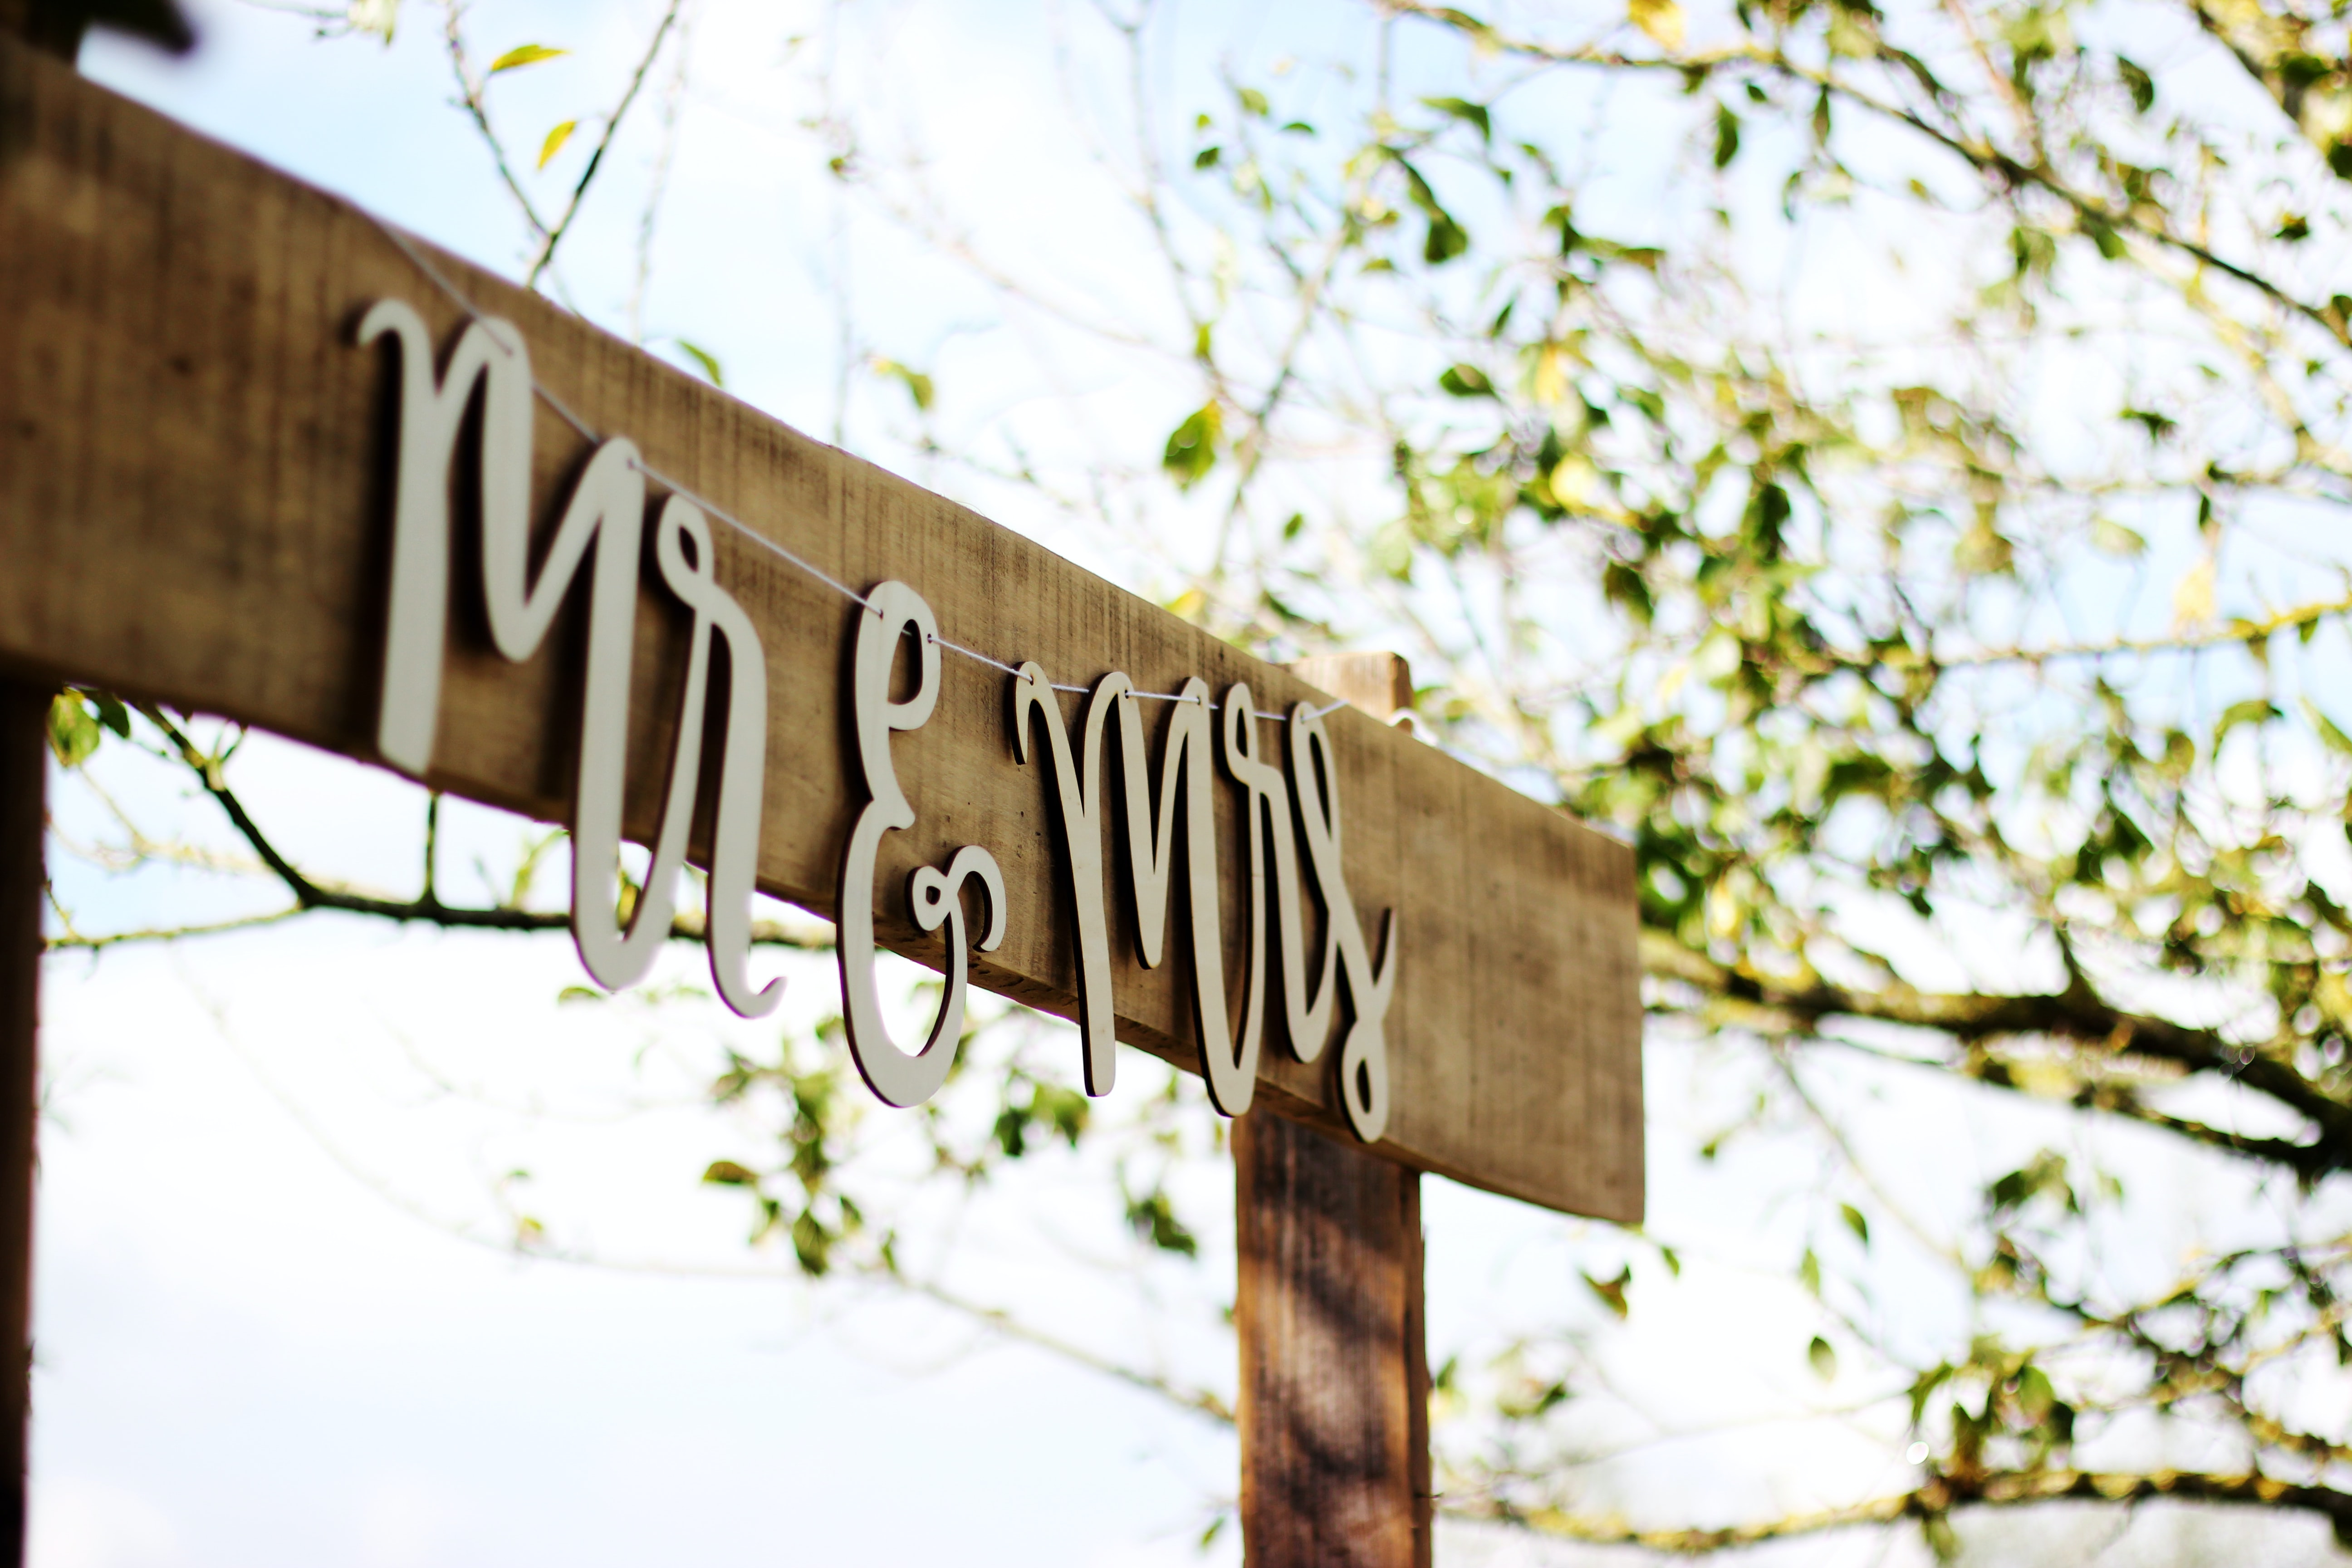 Mr and Mrs sign on wooden board